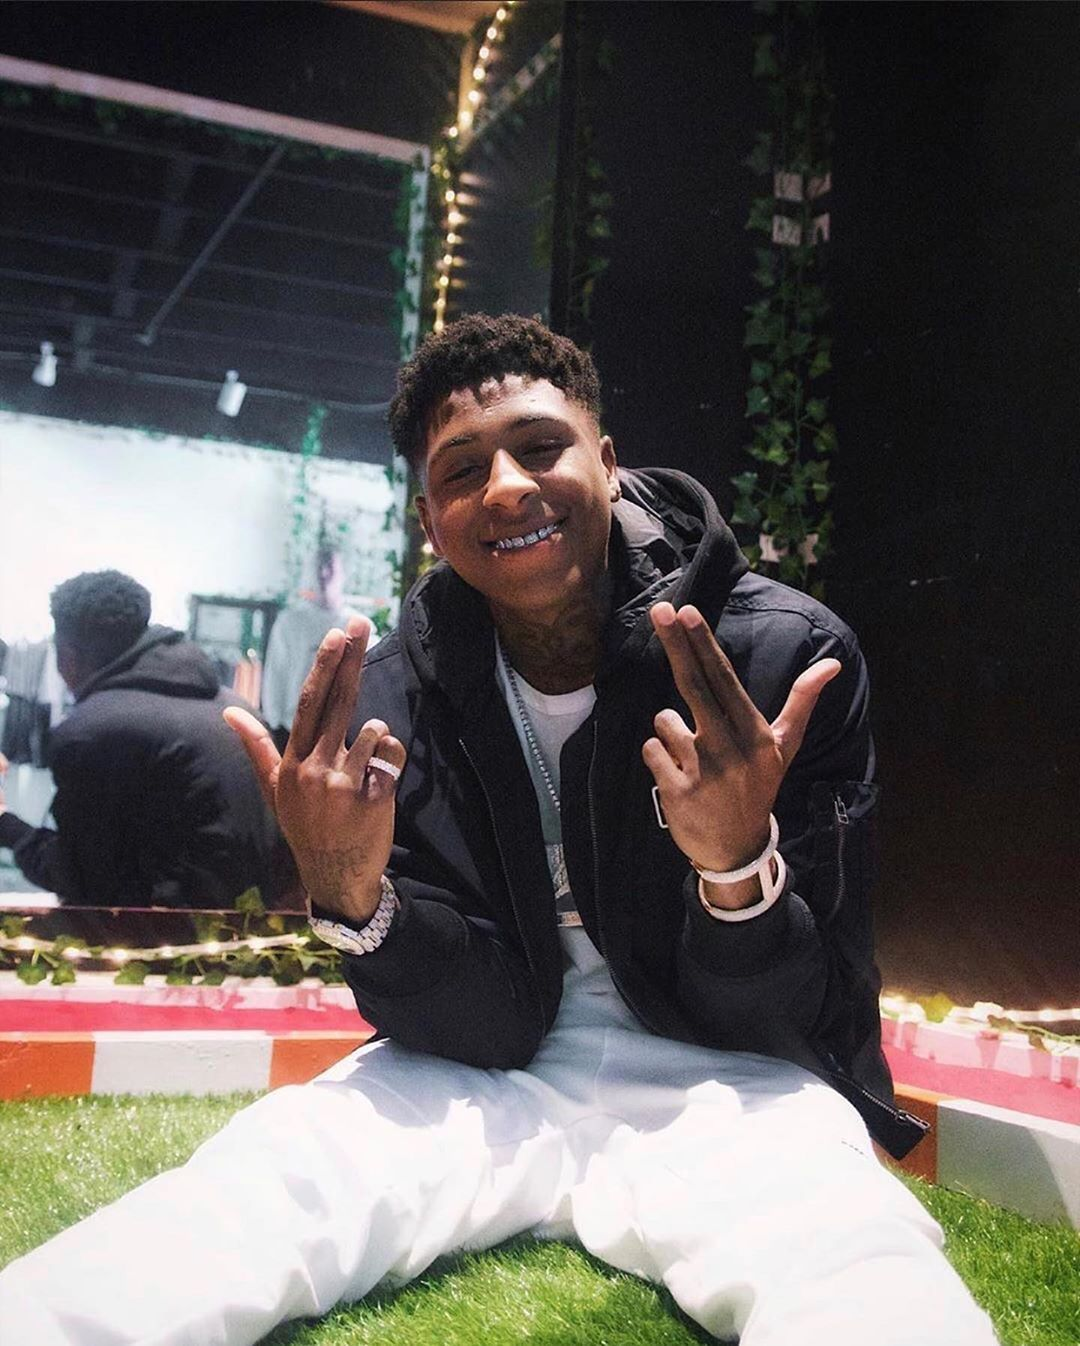 2018 Pics📸 4KT EXPLORE NBAYOUNGBOY FREEDDAWG 38BABY